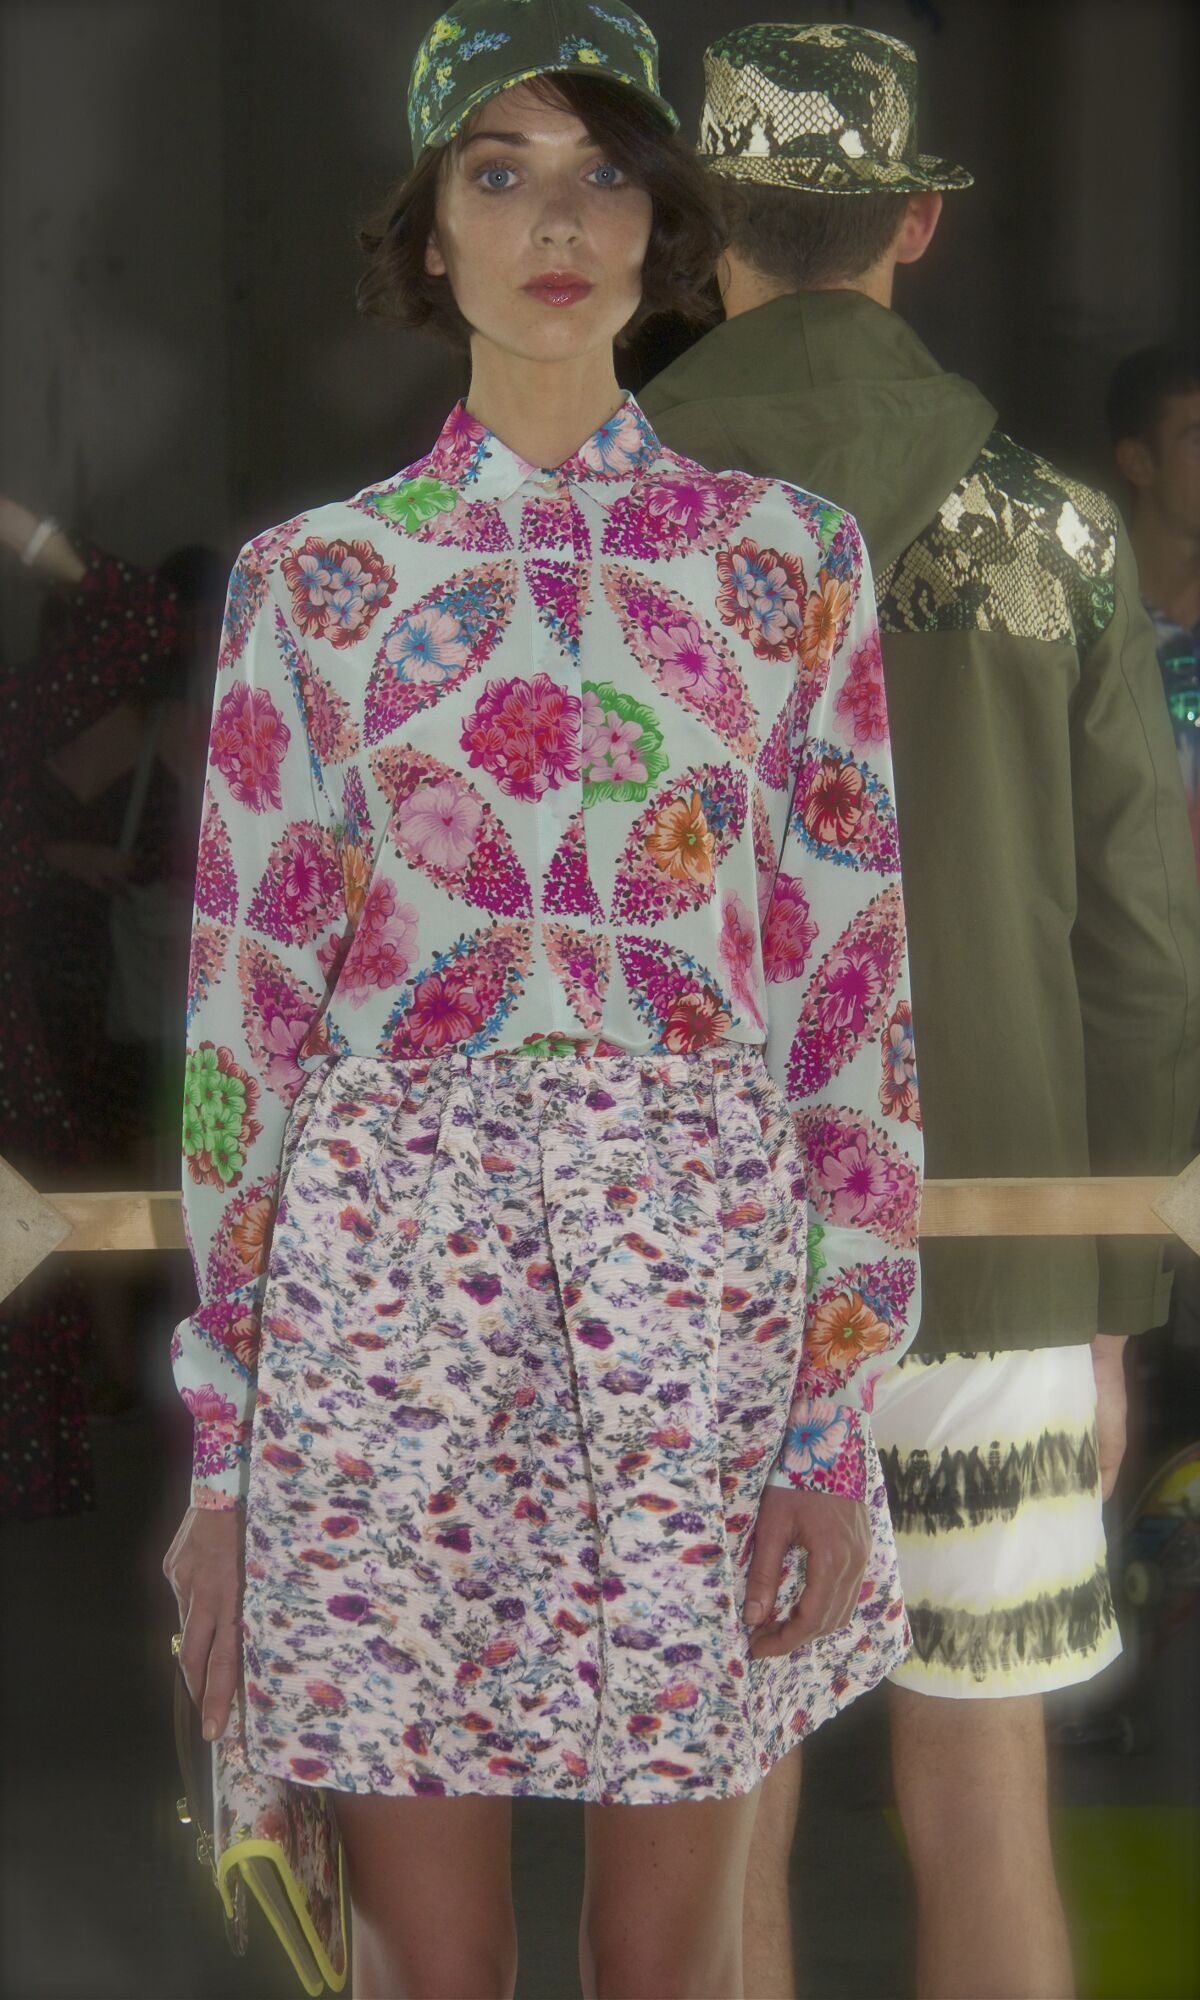 Msgm Summer 2014 Women's Collection Pitti Immagine Uomo